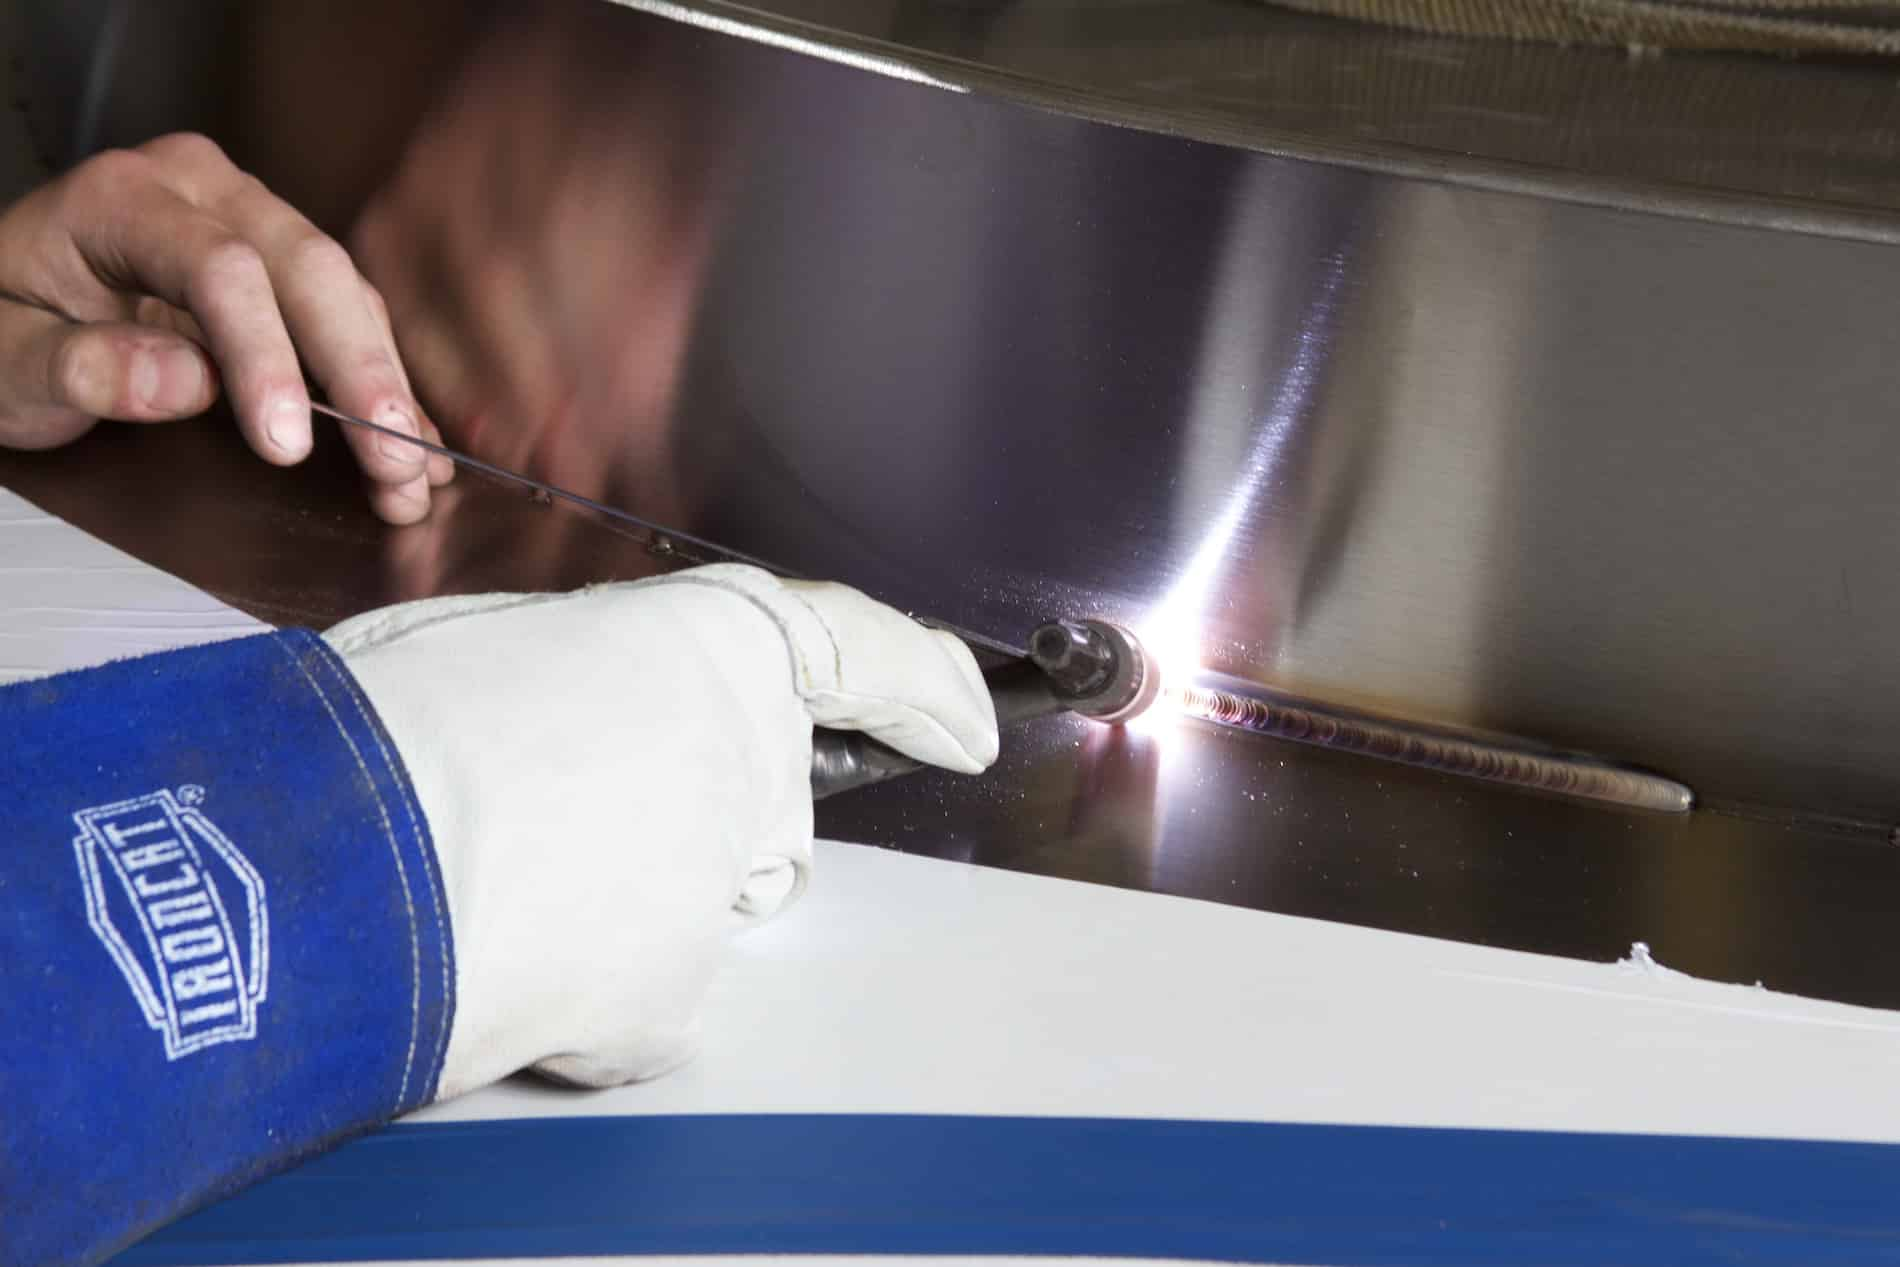 Specialized Facility Sets Badger Sheet Metal Works Apart In Stainless Steel Fabrication Industry